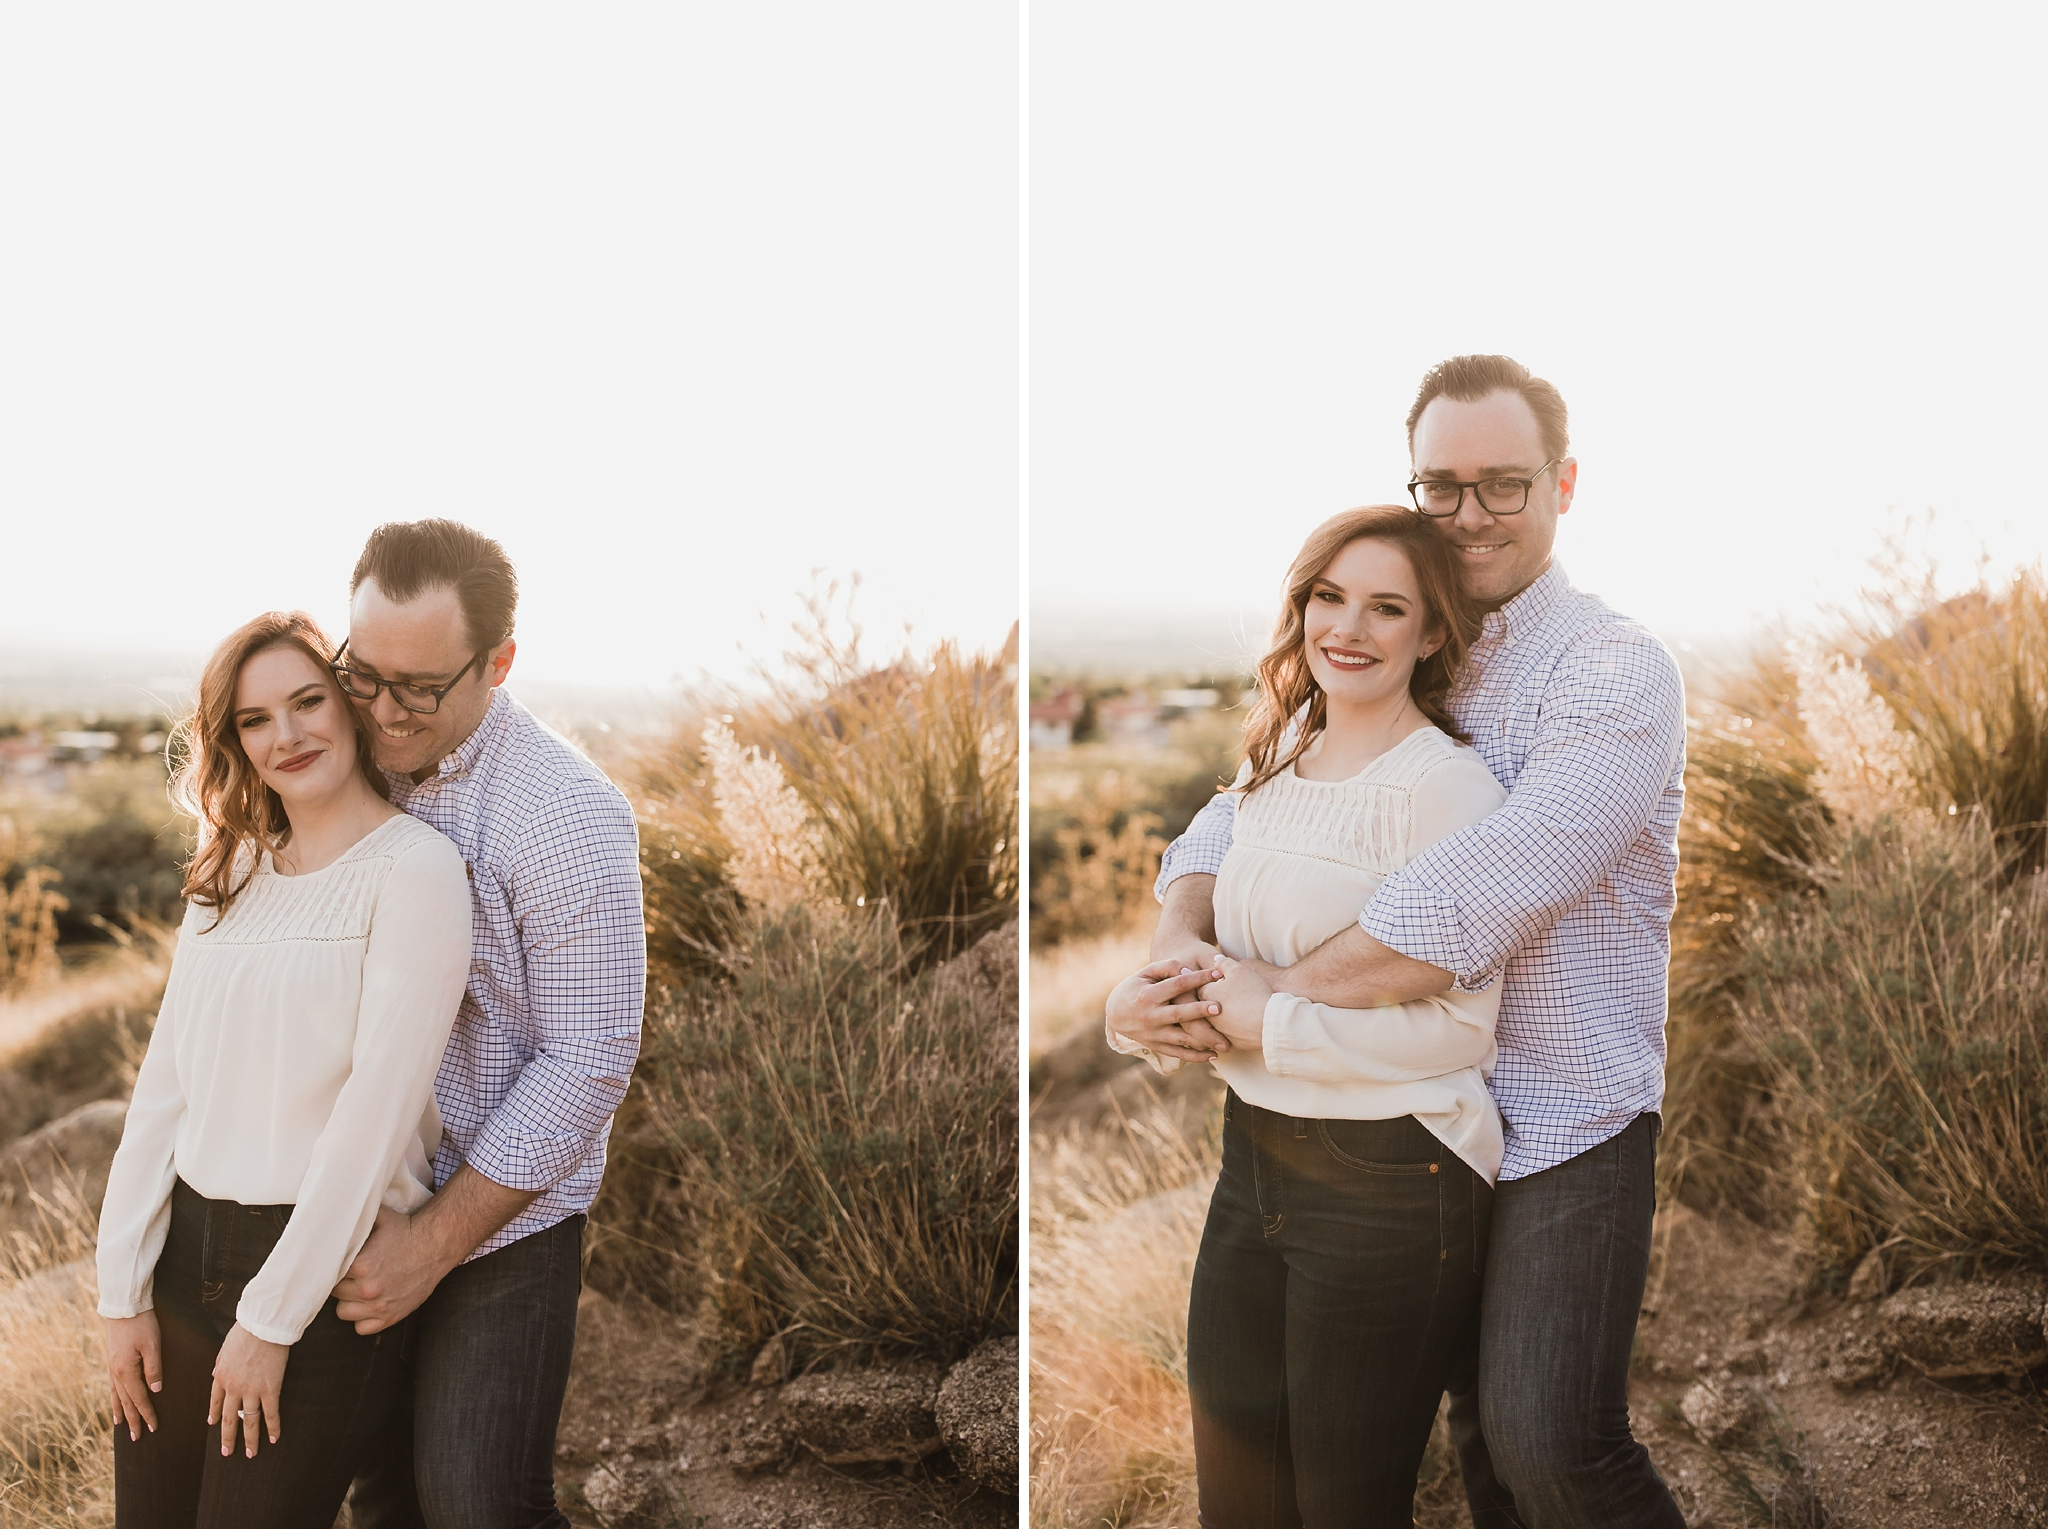 Alicia+lucia+photography+-+albuquerque+wedding+photographer+-+santa+fe+wedding+photography+-+new+mexico+wedding+photographer+-+new+mexico+wedding+-+new+mexico+engagement+-+engagement+photographer+-+mountain+engagement+-+desert+engagement_0007.jpg